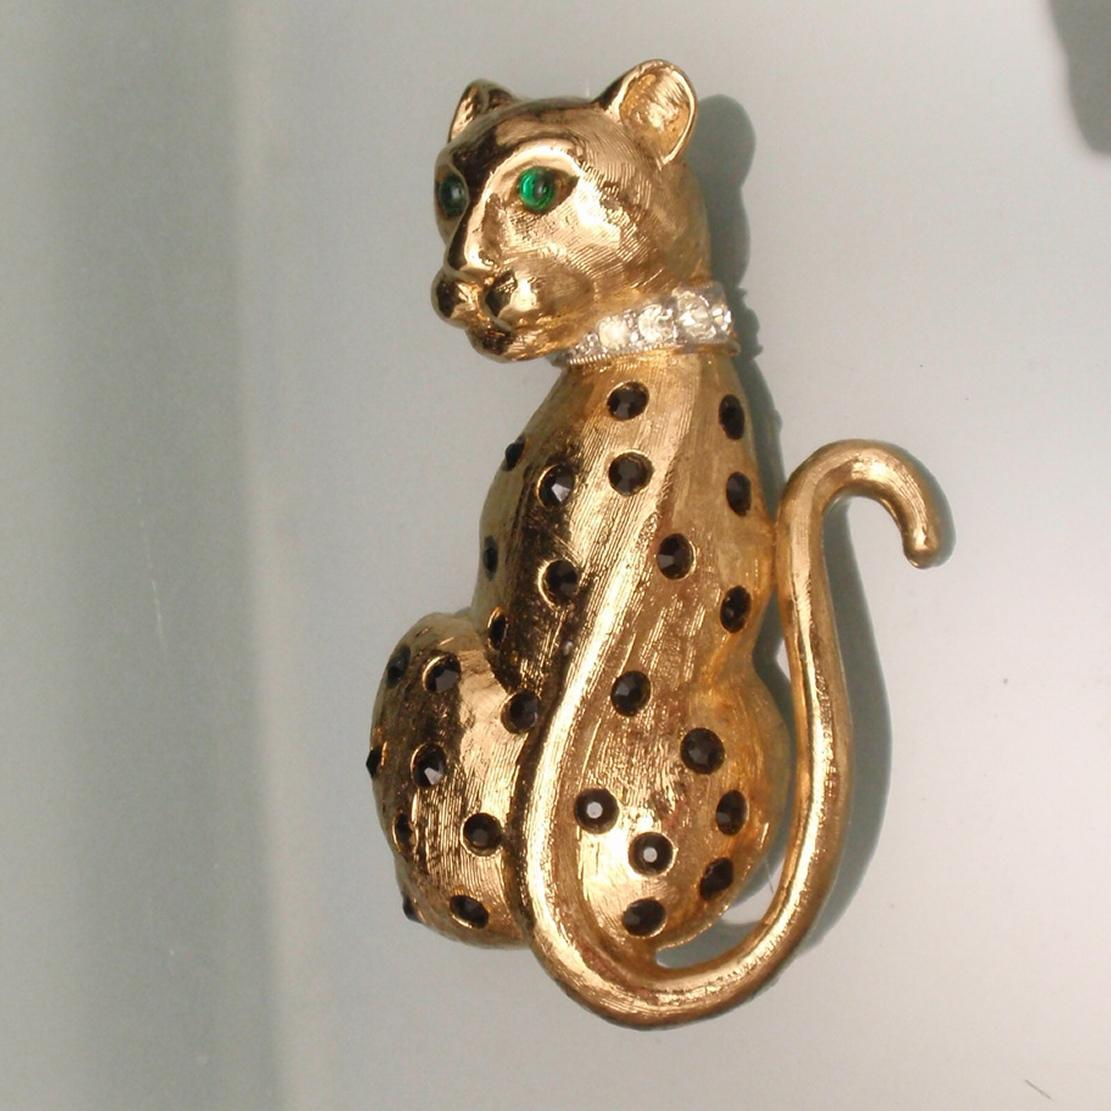 Leopard Brooch Pin Vintage Panetta Big Cat Jaguar